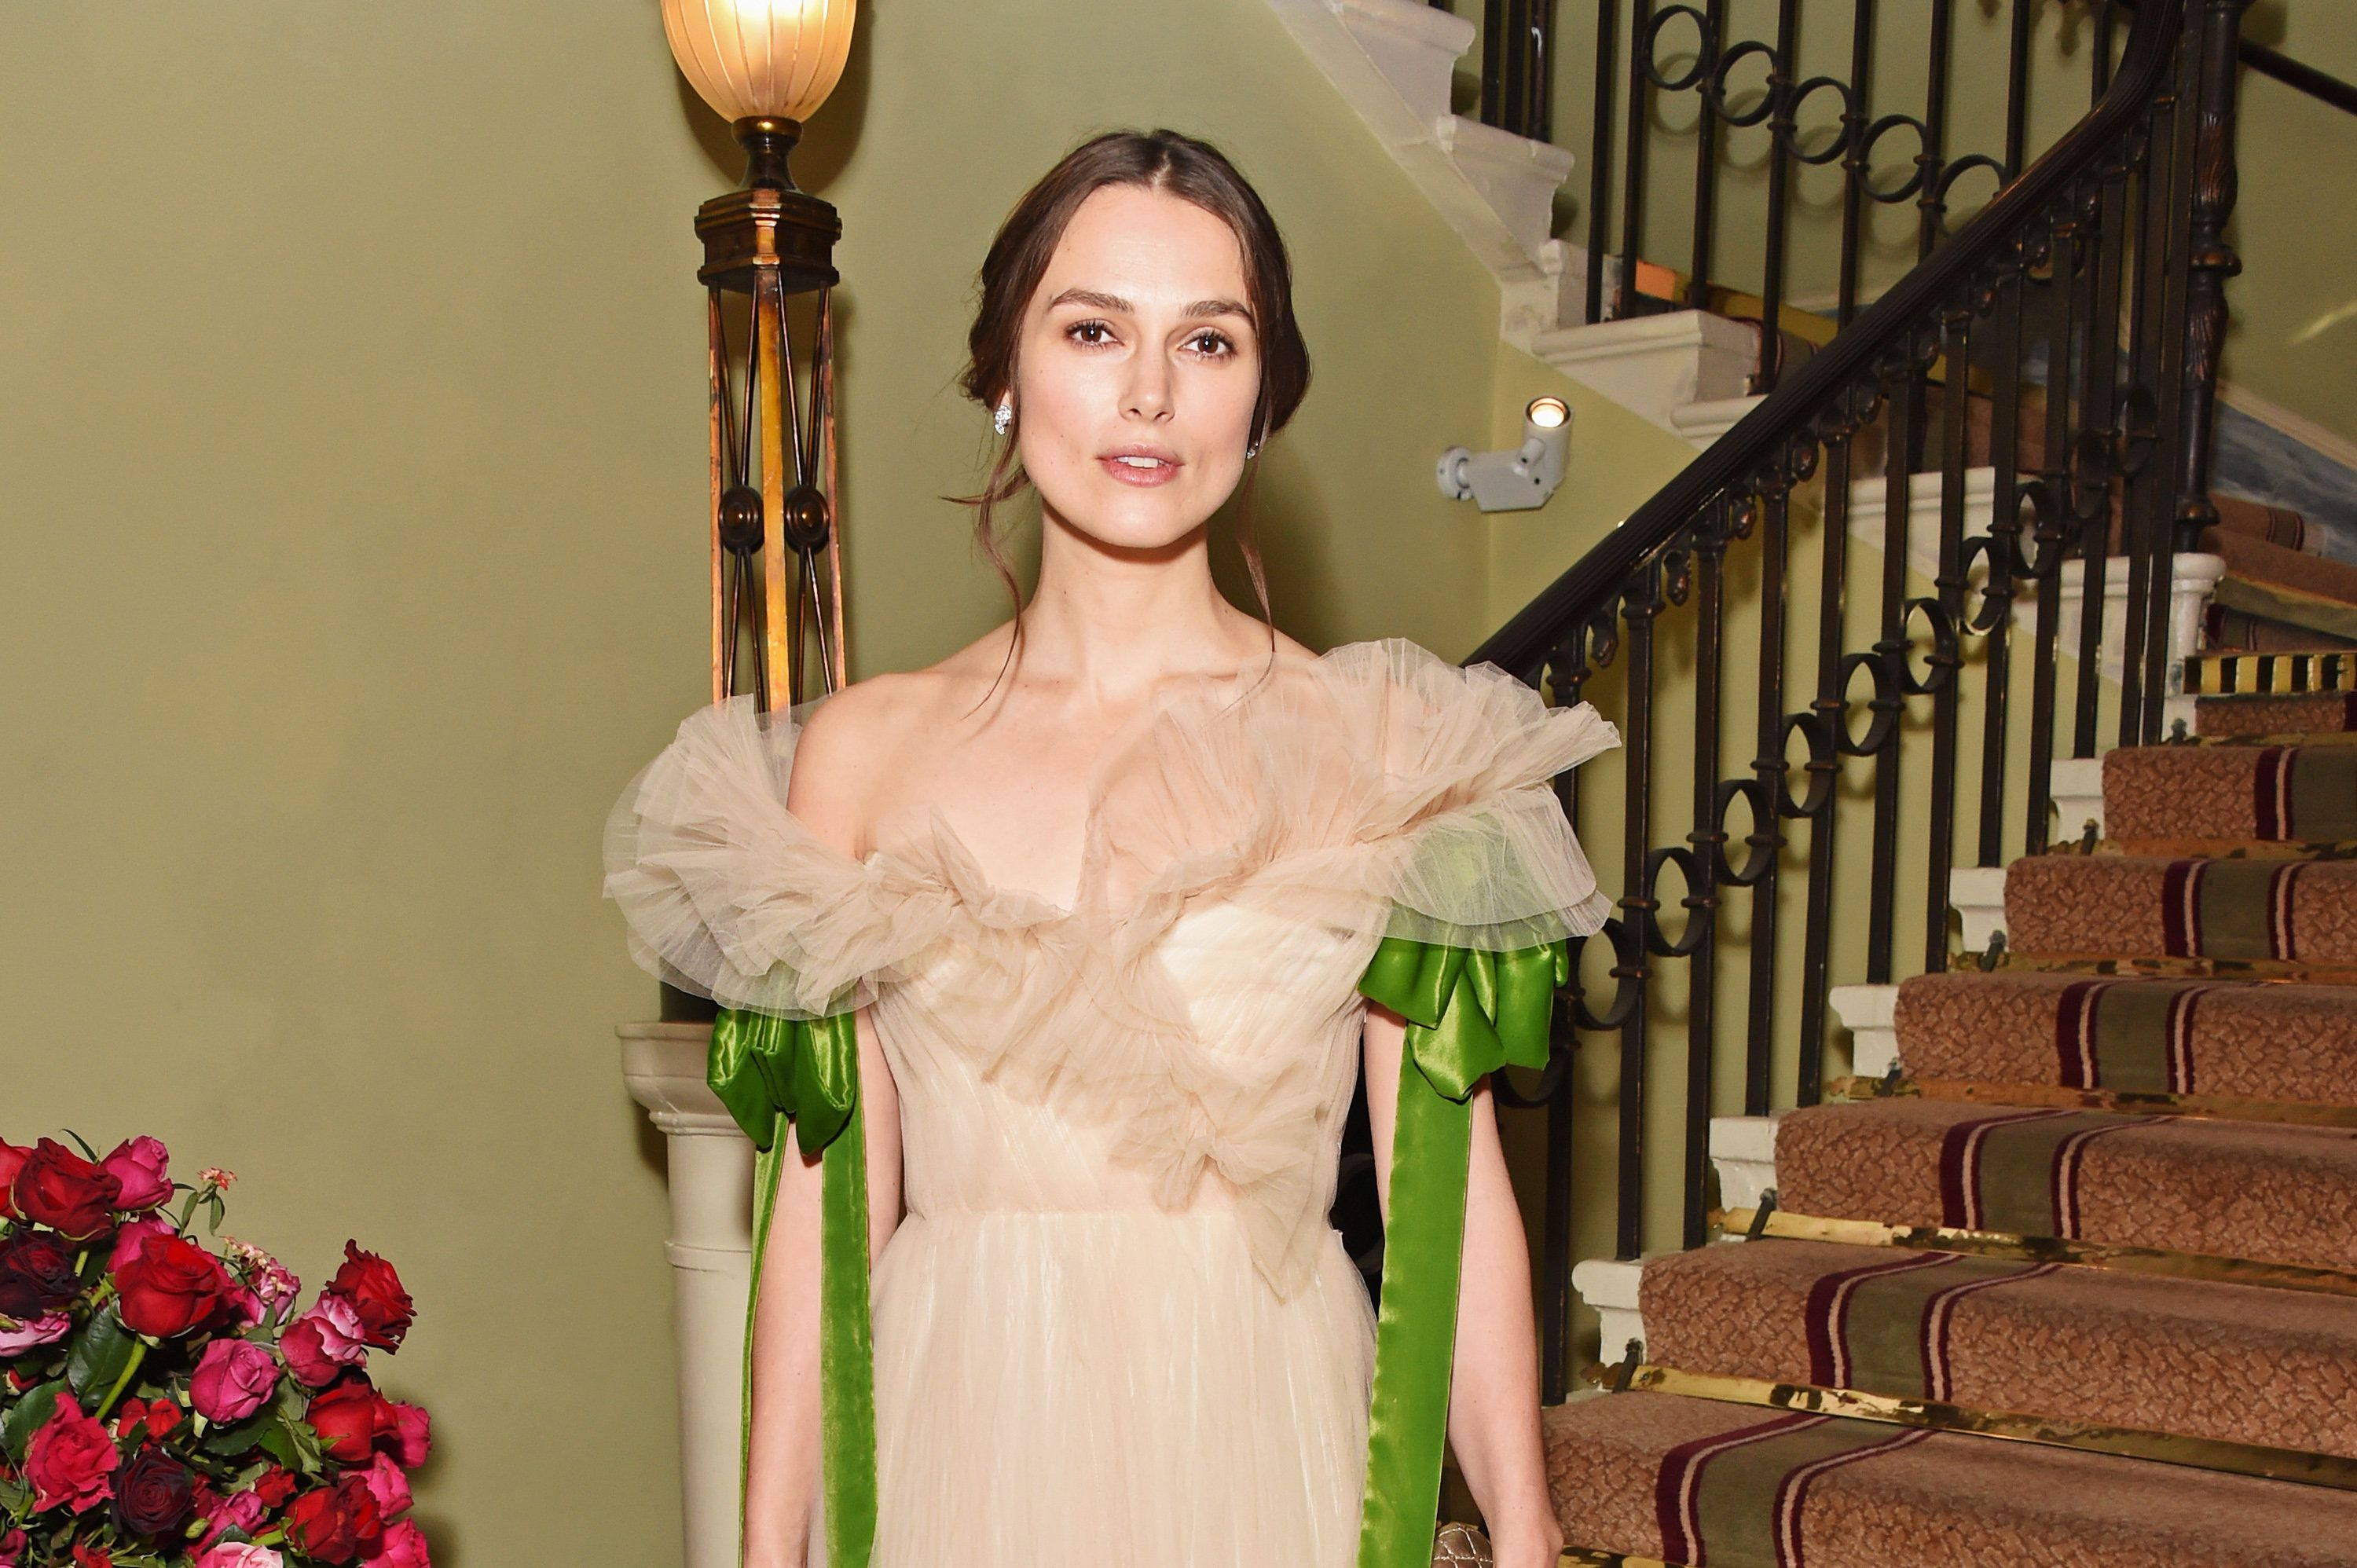 Keira Knightley Stopped Doing Modern-Day Films Because 'Female Characters Nearly Always Get